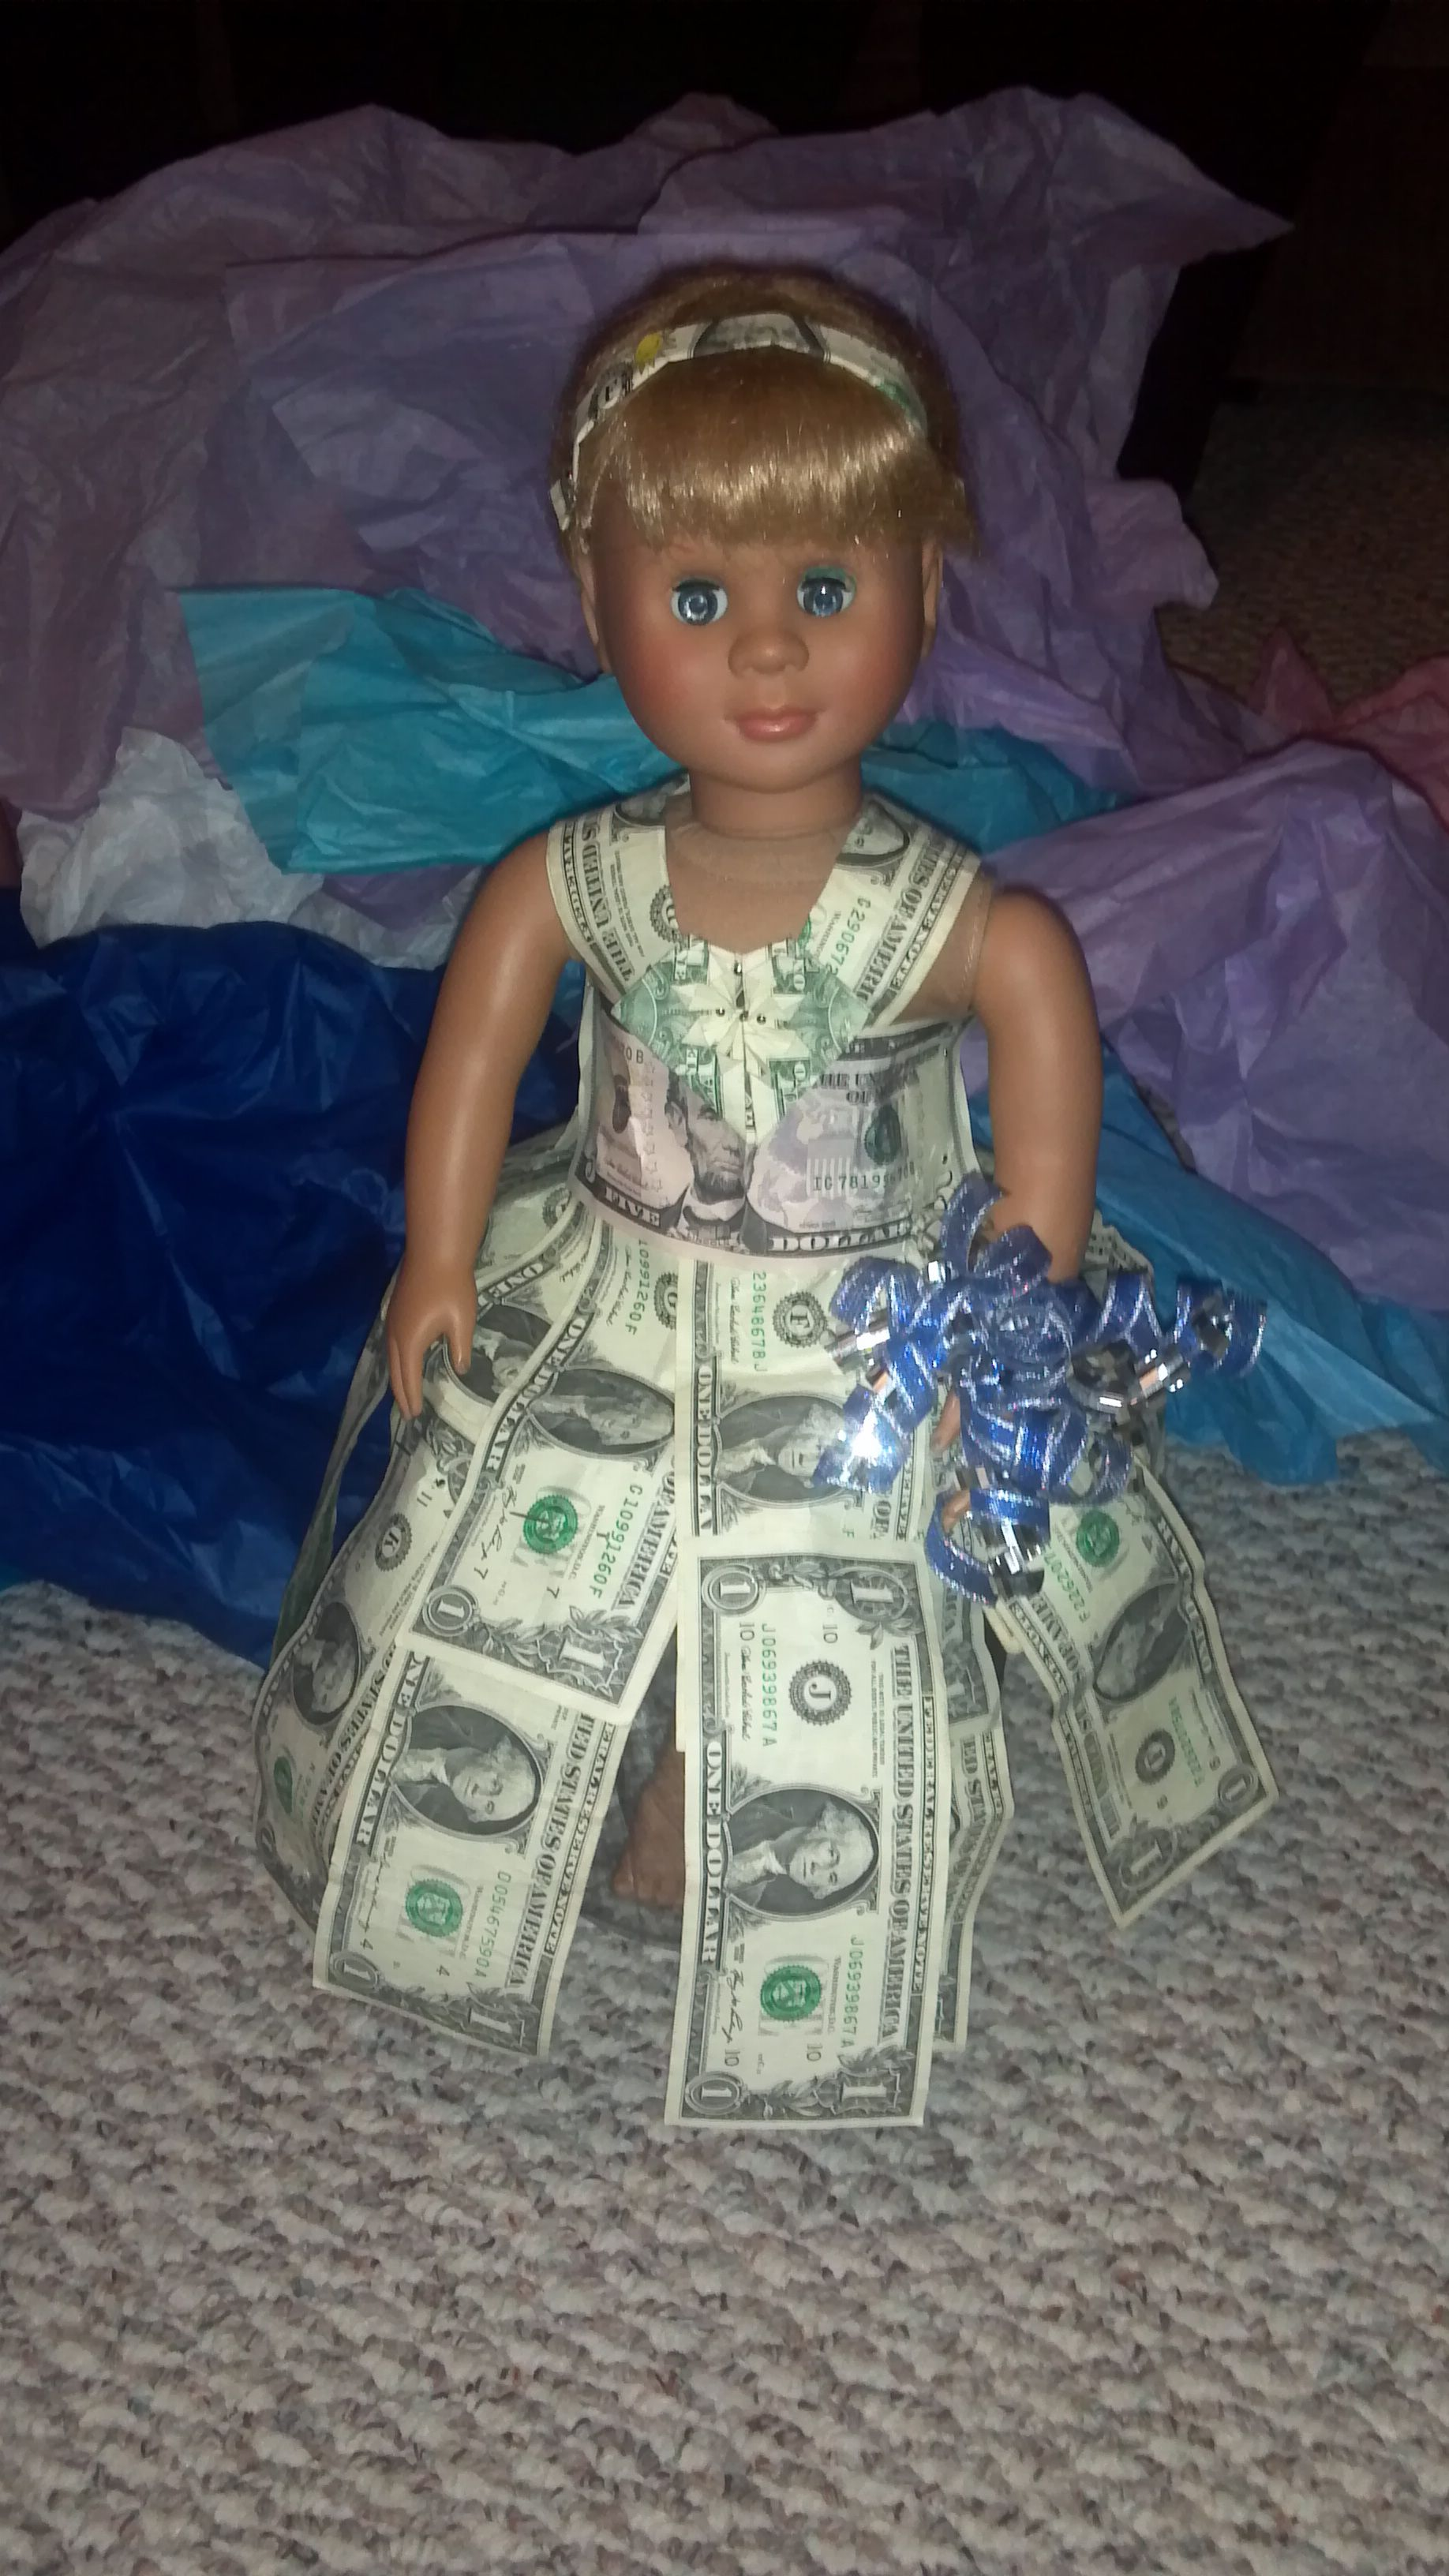 Doll dress made of money for a gift idea | Miscellaneous ...